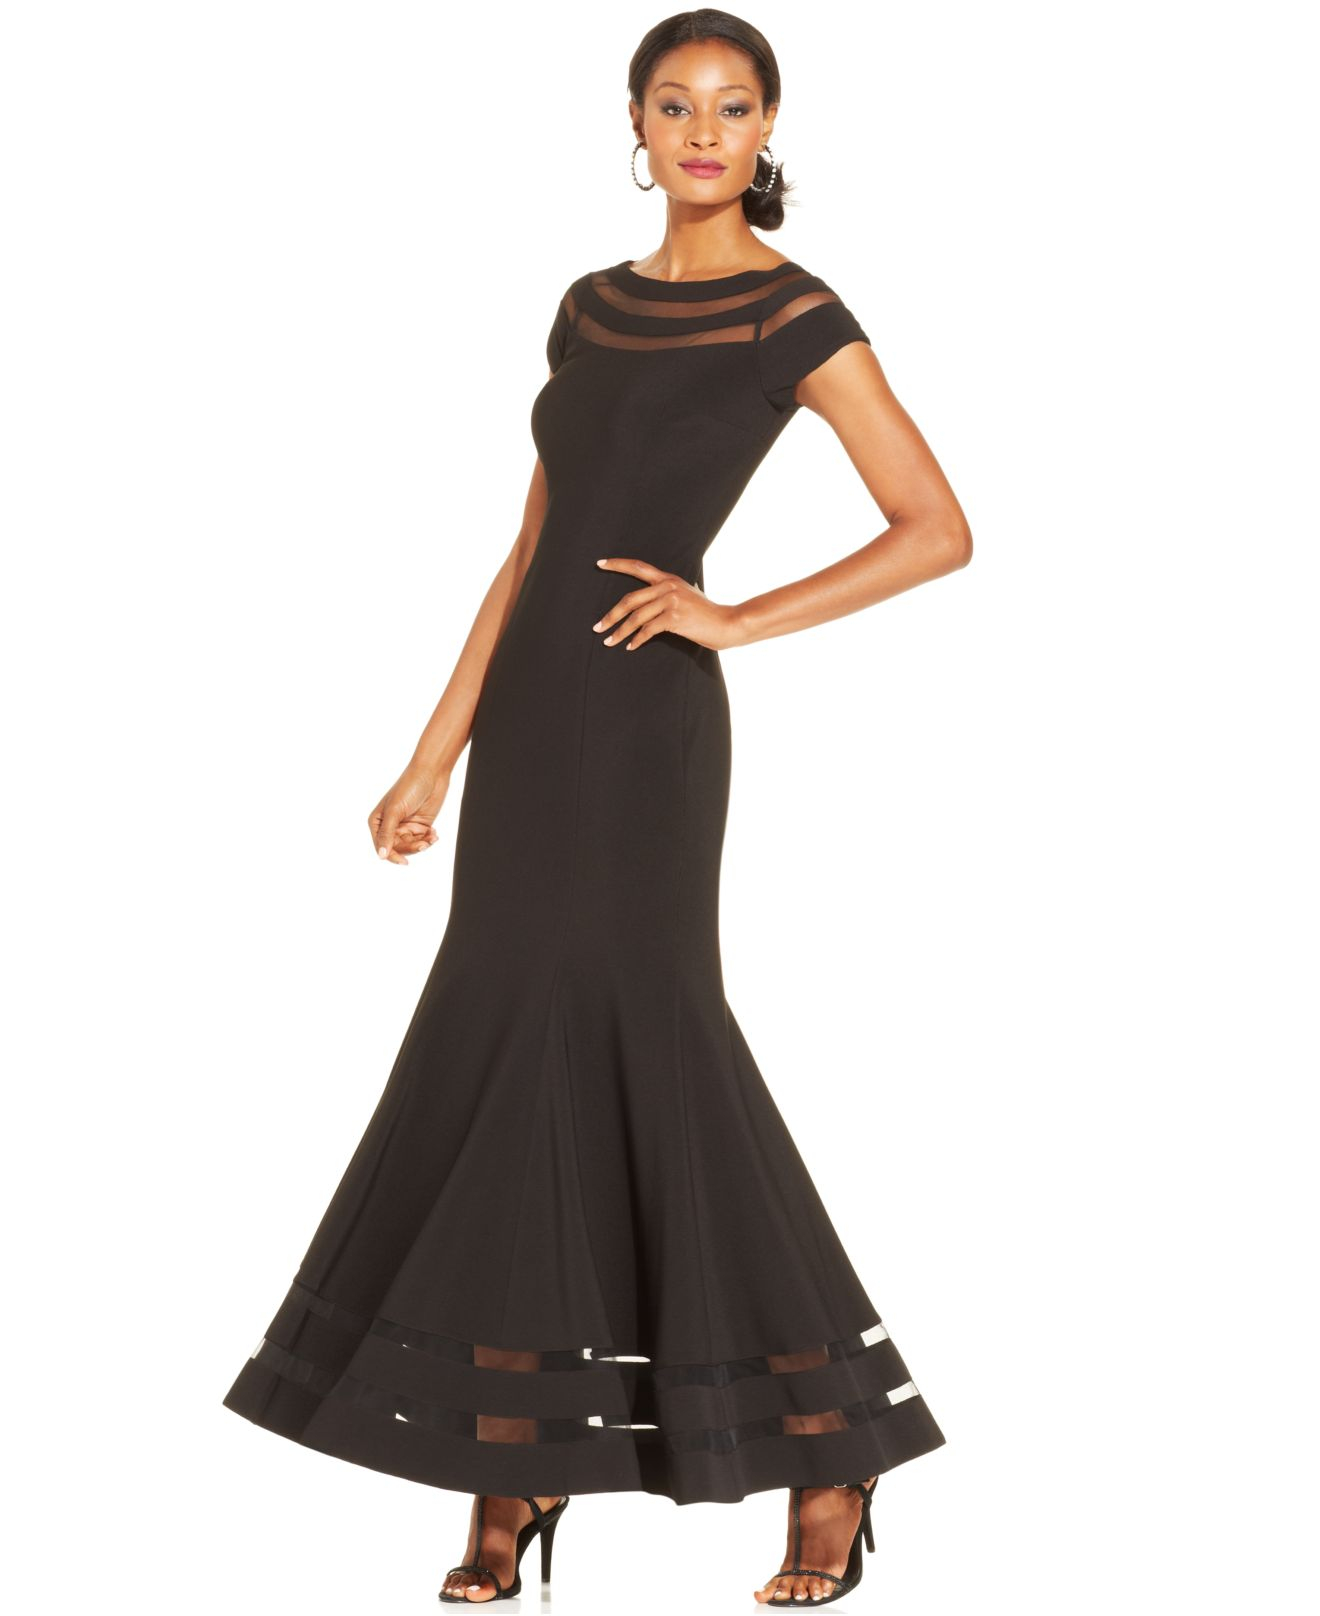 Lyst - Js Collections Illusion Panel Mermaid Gown in Black